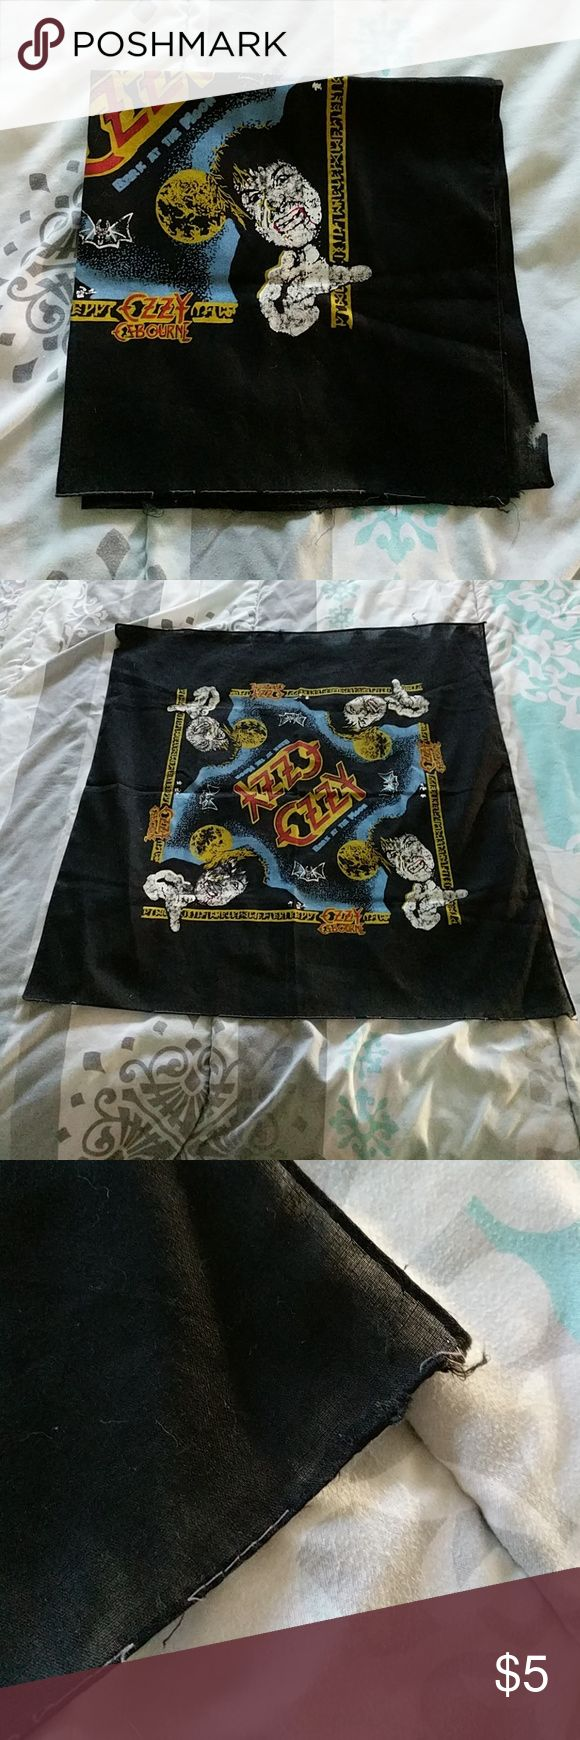 Vintage Ozzy Osbourne Bandana Condition: Used / Vintage / Normal wear & tear.  NOTICE: If you believe your bundle might weigh more than 5 LBS, please ask me to weigh it before you purchase. I can not pay the added shipping cost for bundles over 5 LBS.   My home is a SMOKE FREE / KITTY FRIENDLY home. Thank you!! :) Vintage Accessories Scarves & Wraps